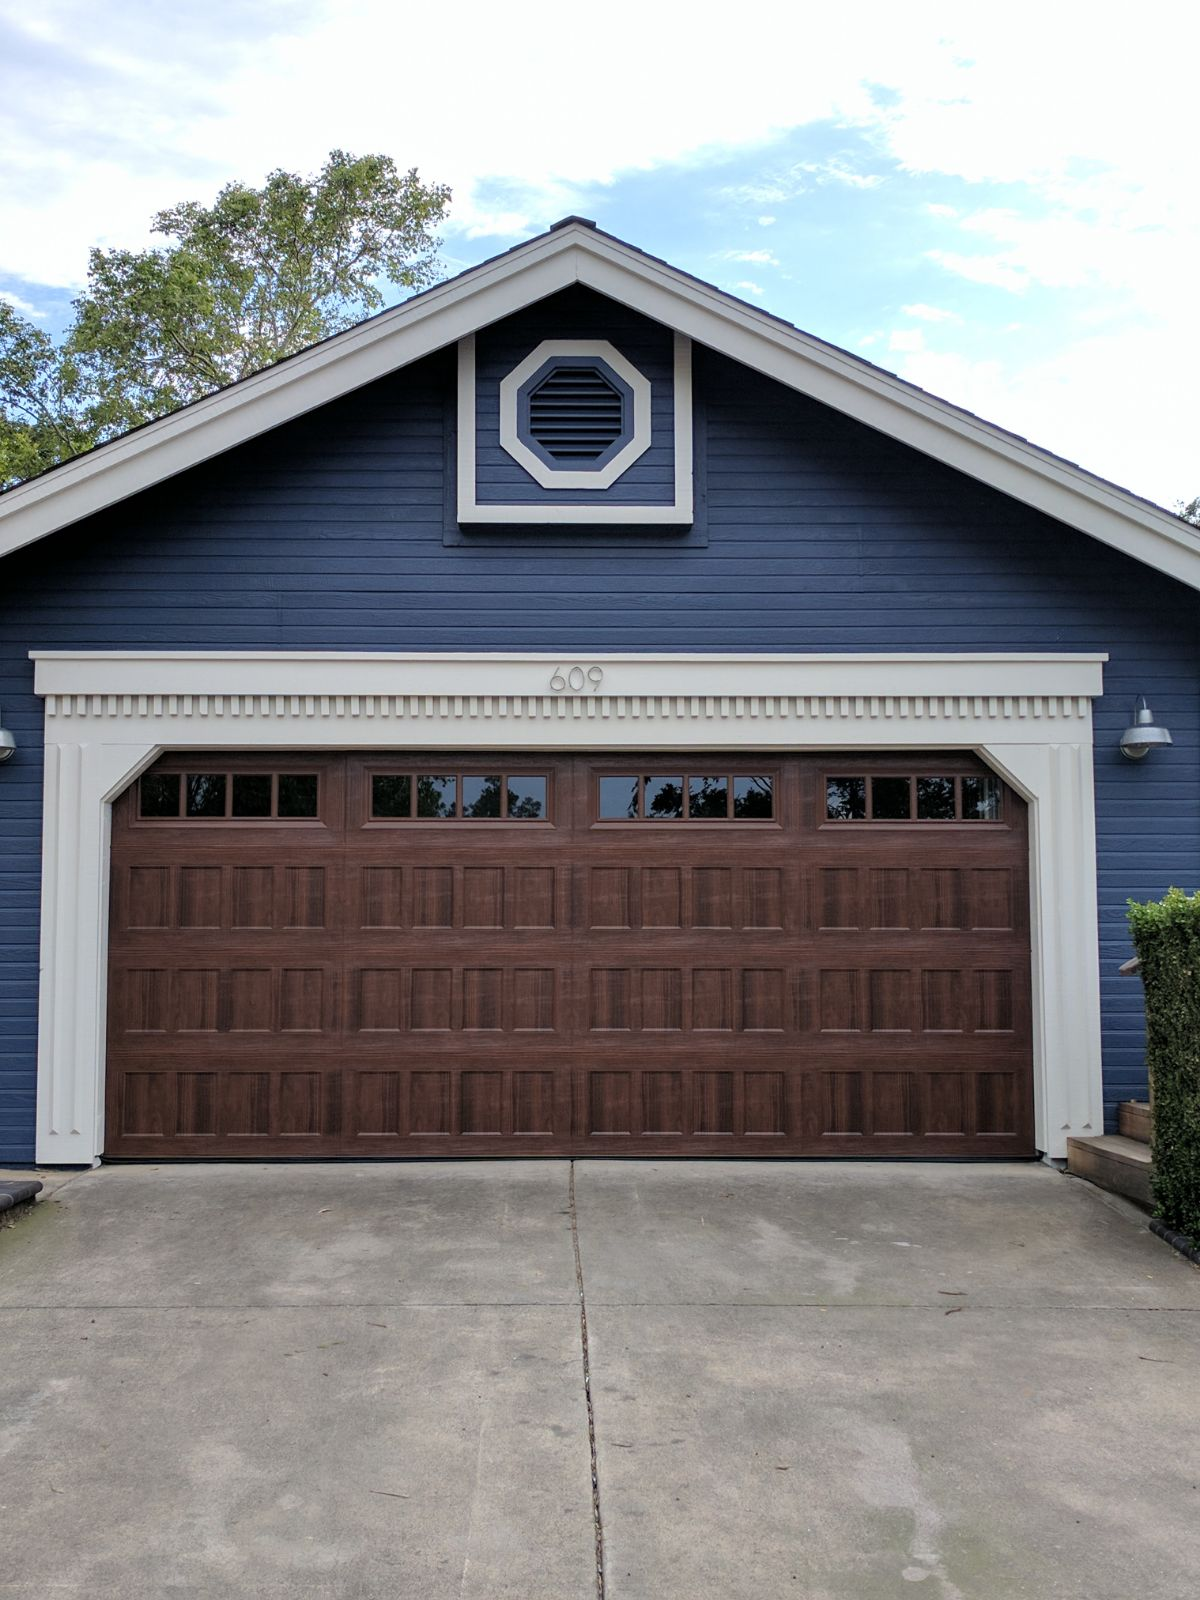 Le Meilleur Amarr Oak Summit 1000 Walnut Garage Door Perfect Ce Mois Ci